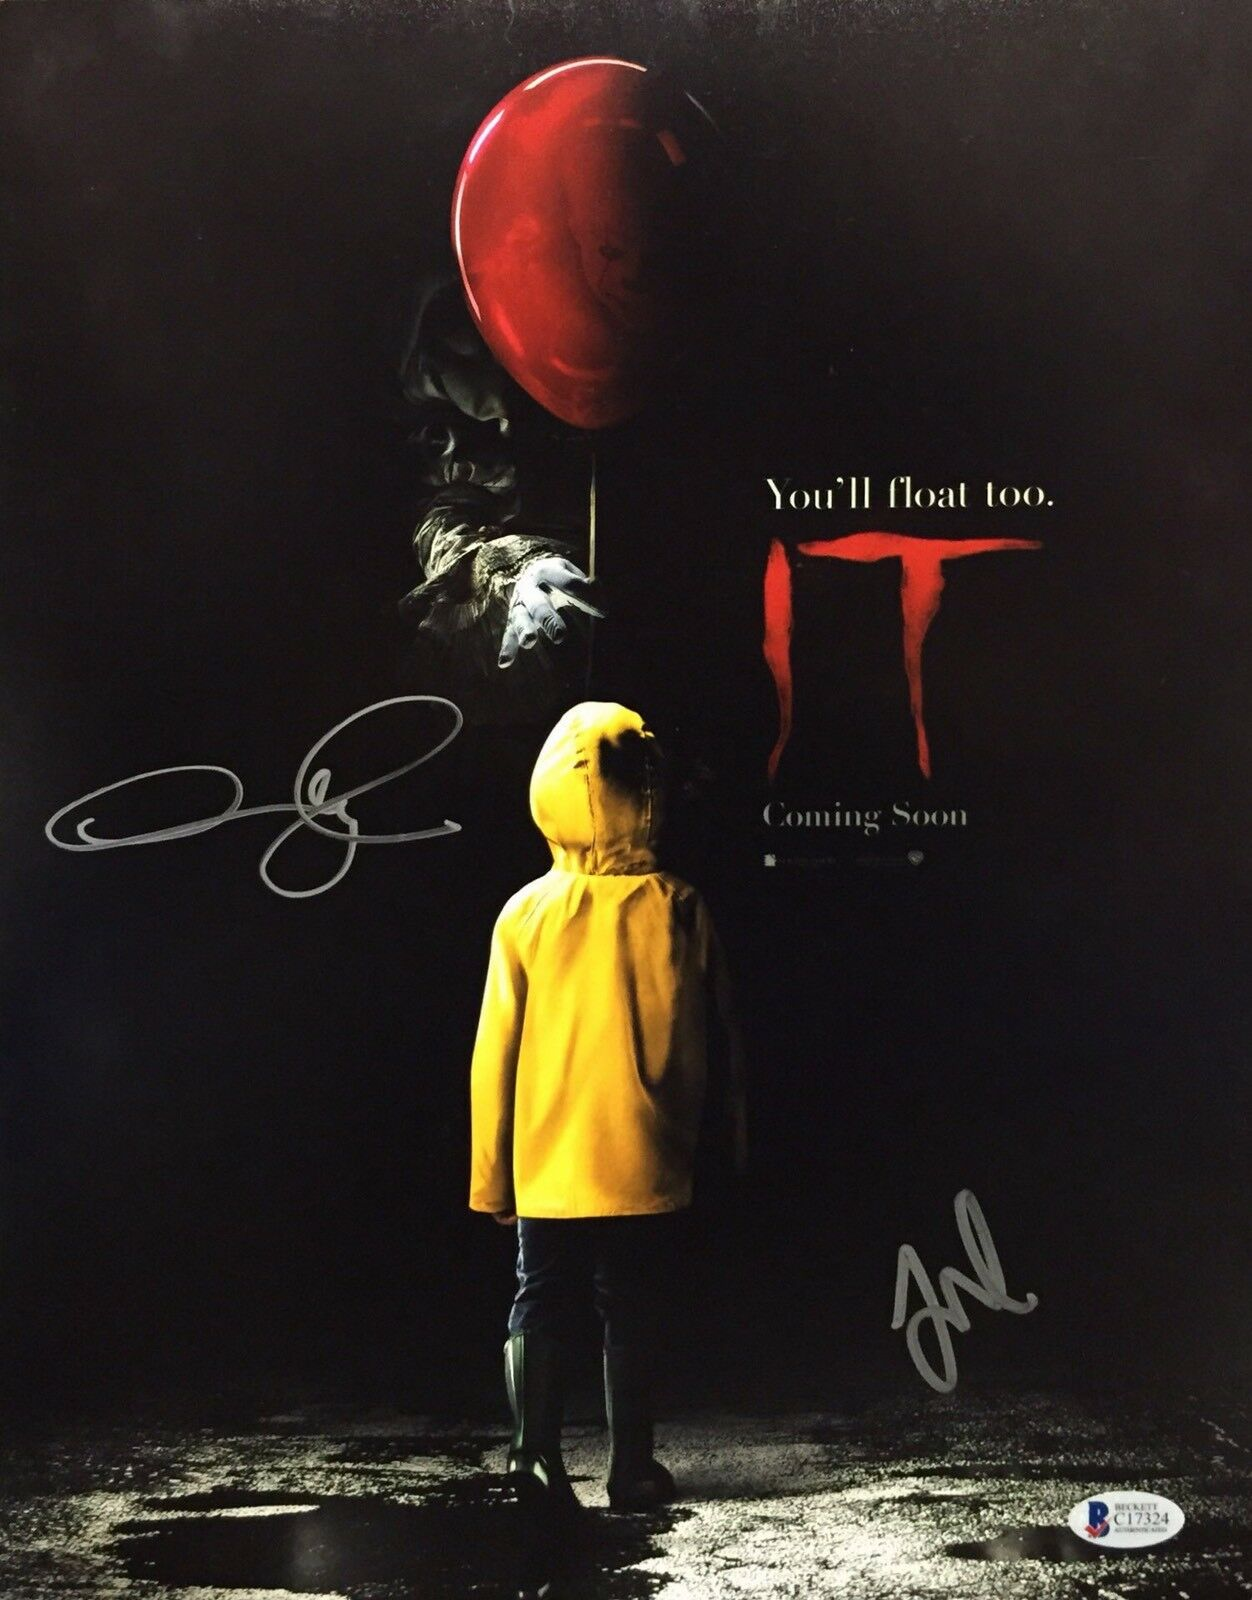 Jaeden Lieberher And Andy Muschietti Signed 'It' 11x14 Photo Beckett C17324